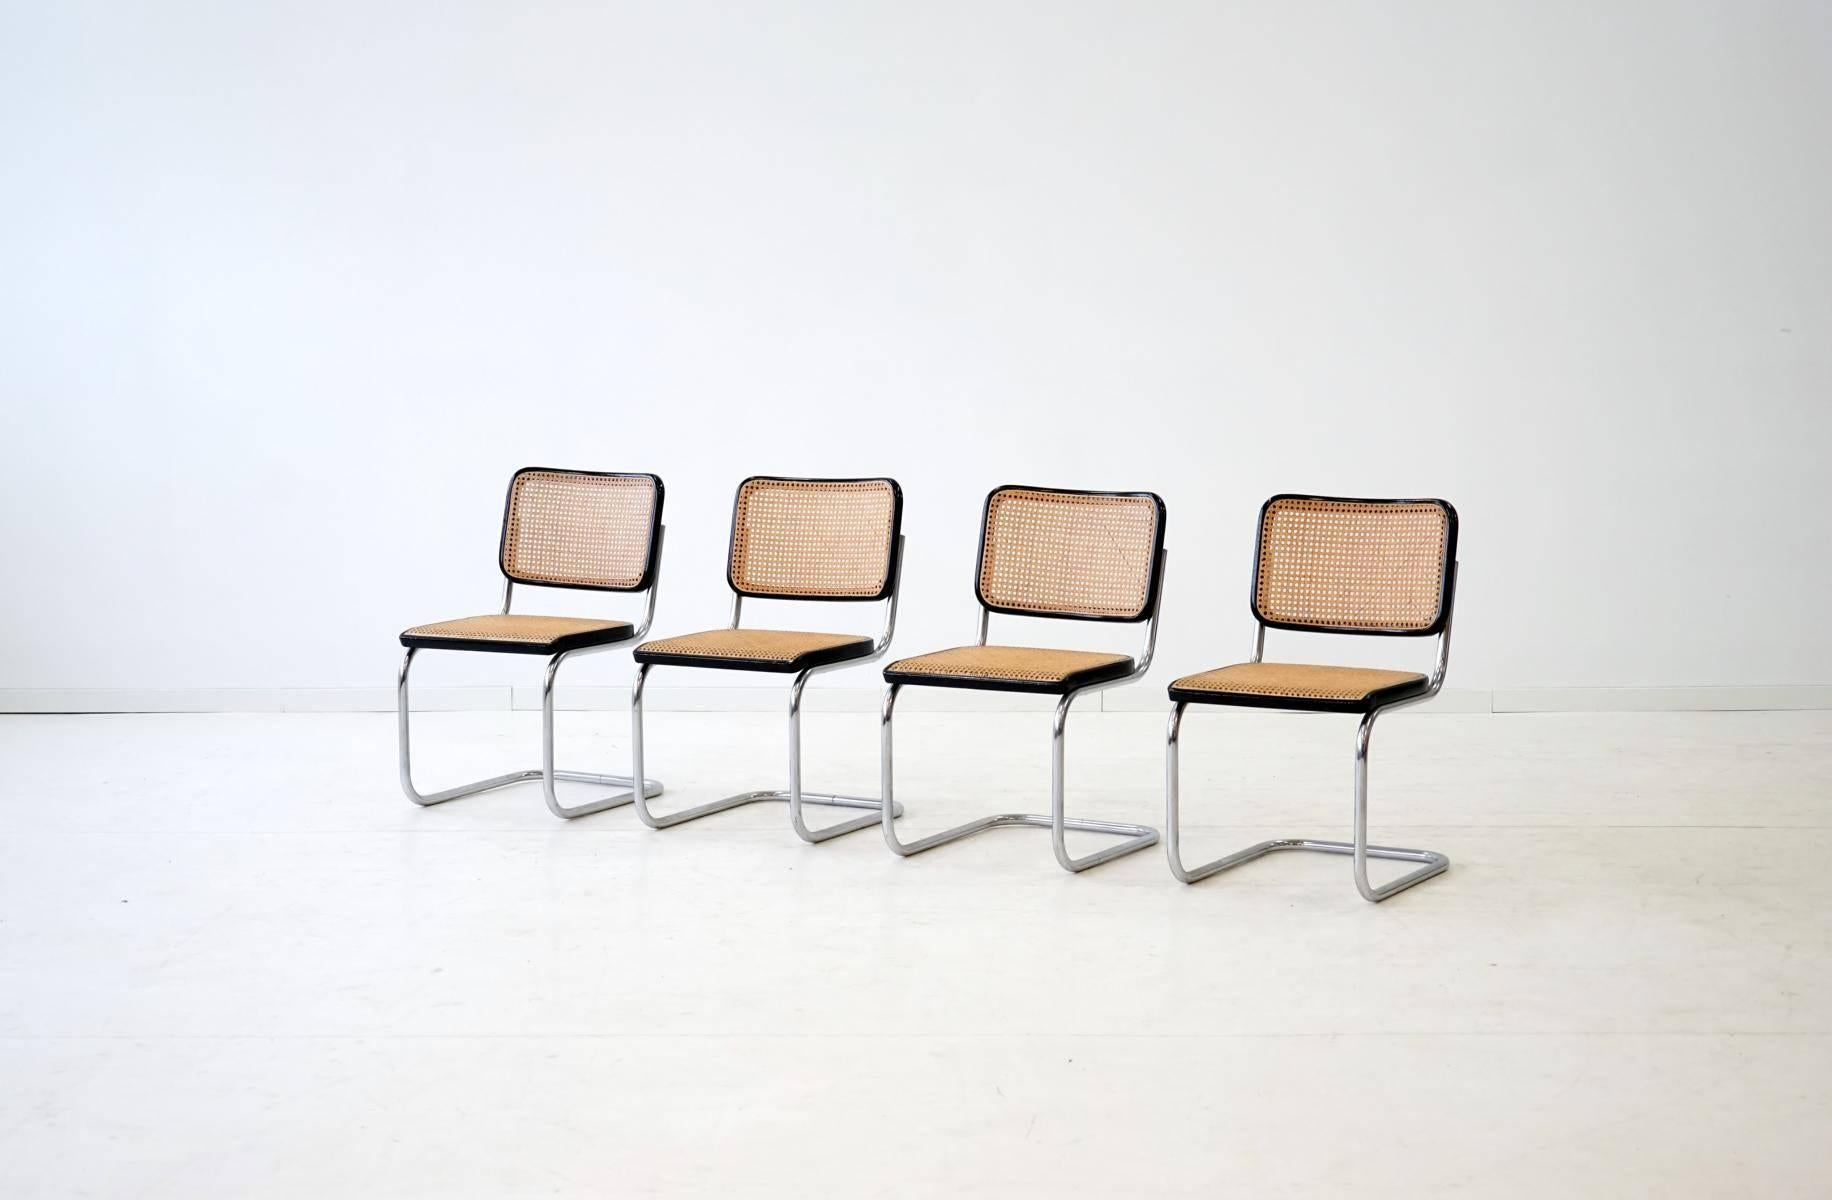 Set of Four S 32 Cantilever Chair by Marcel Breuer Mart Stam for Thonet 1920s at 1stdibs  sc 1 st  1stDibs & Set of Four S 32 Cantilever Chair by Marcel Breuer Mart Stam for ...